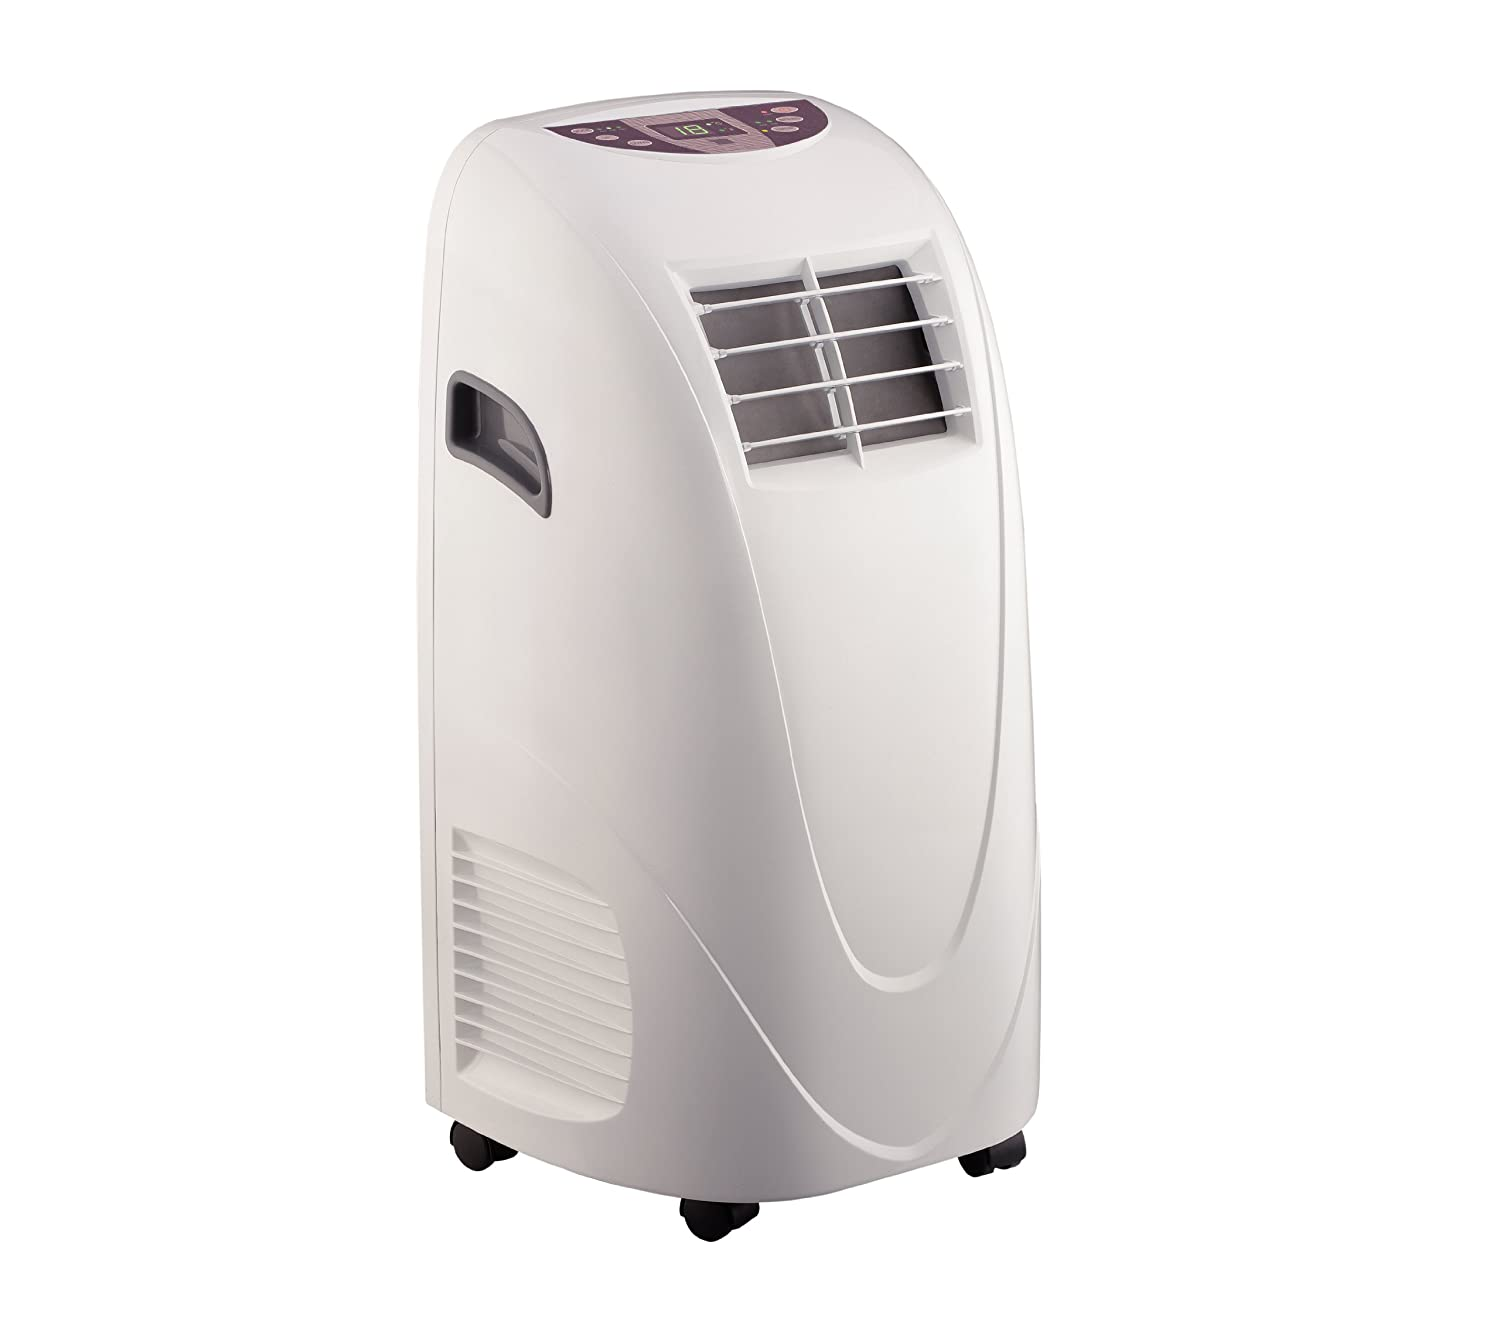 Global Air 10,000 BTU Portable Air Conditioner Cooling /Fan with Remote Control in White YPL310C